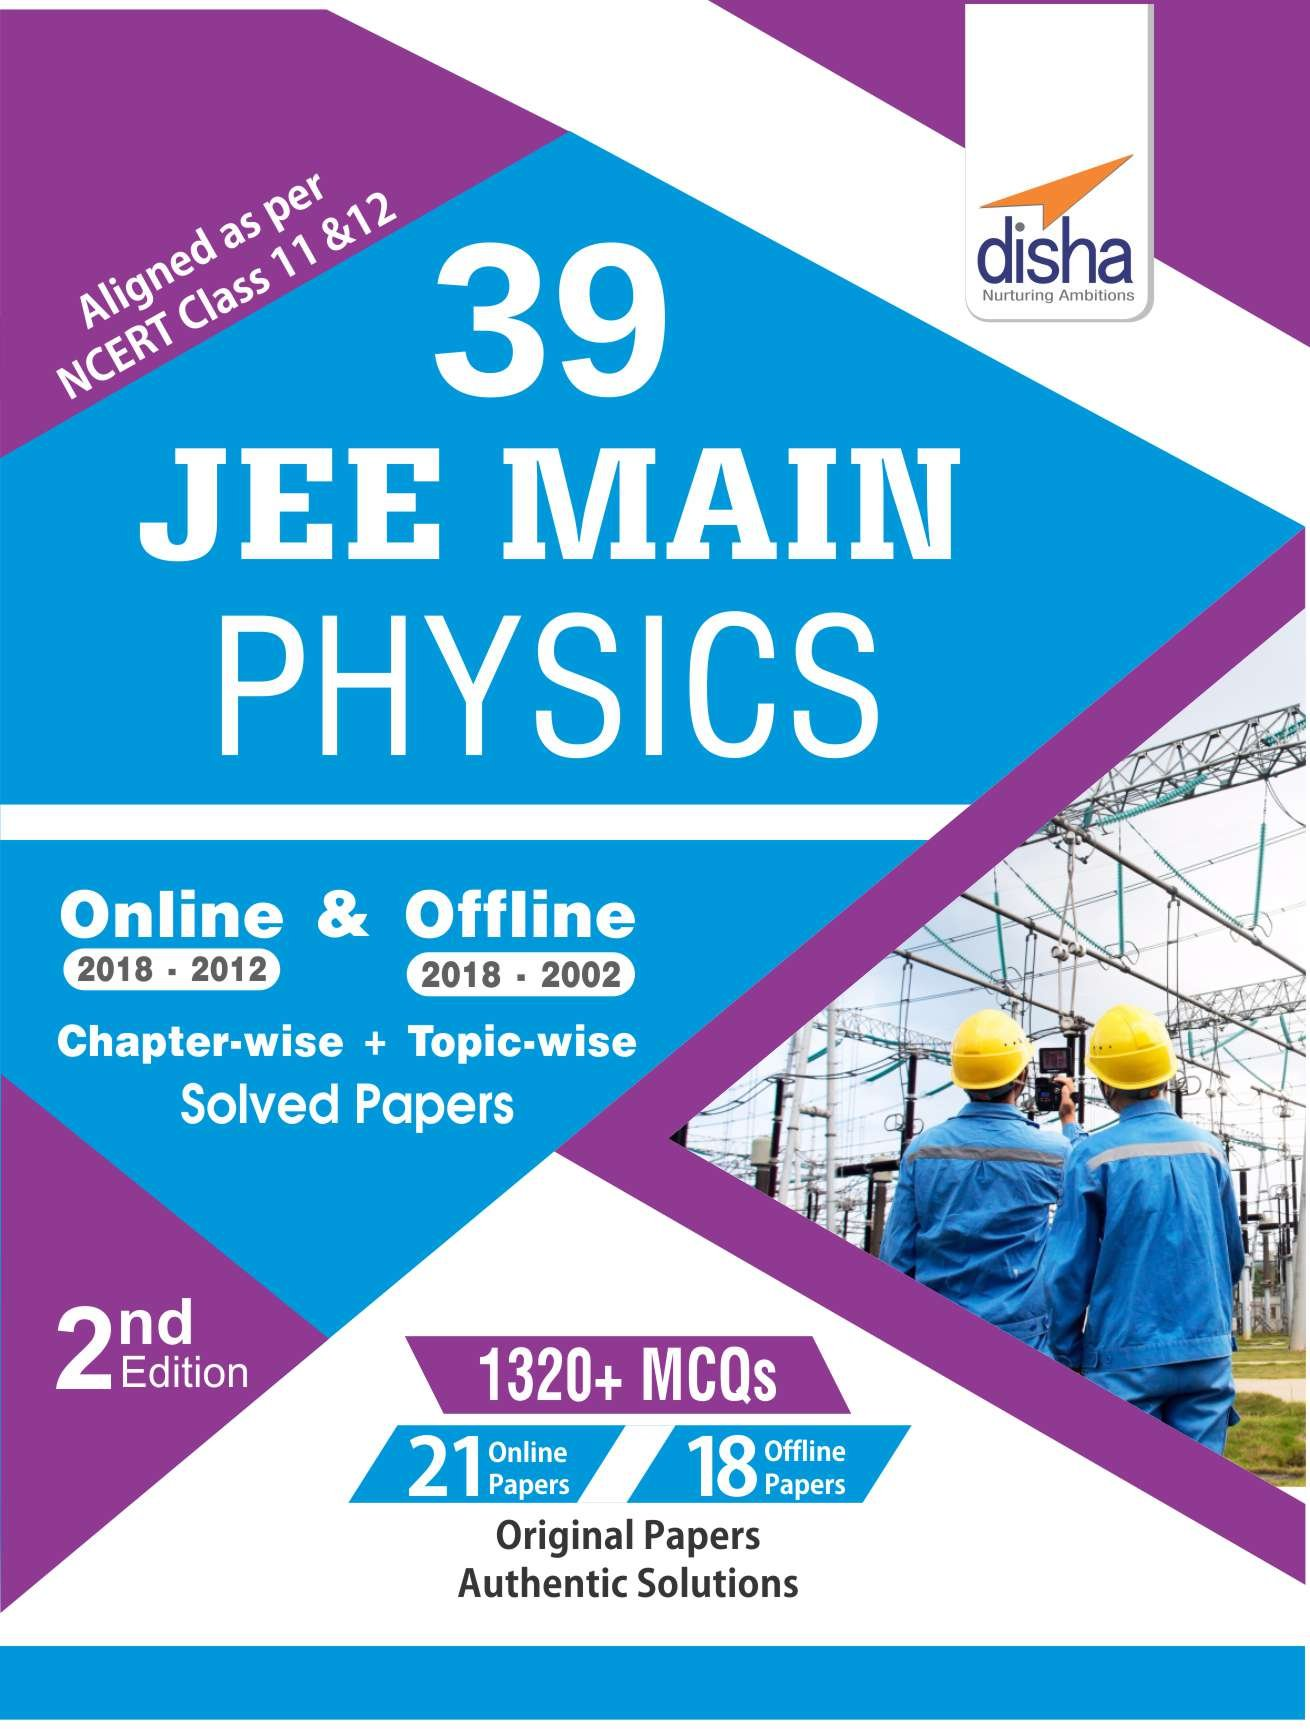 39 JEE Main Physics Online 2018-2012 & Offline 2018-2002 Chapter